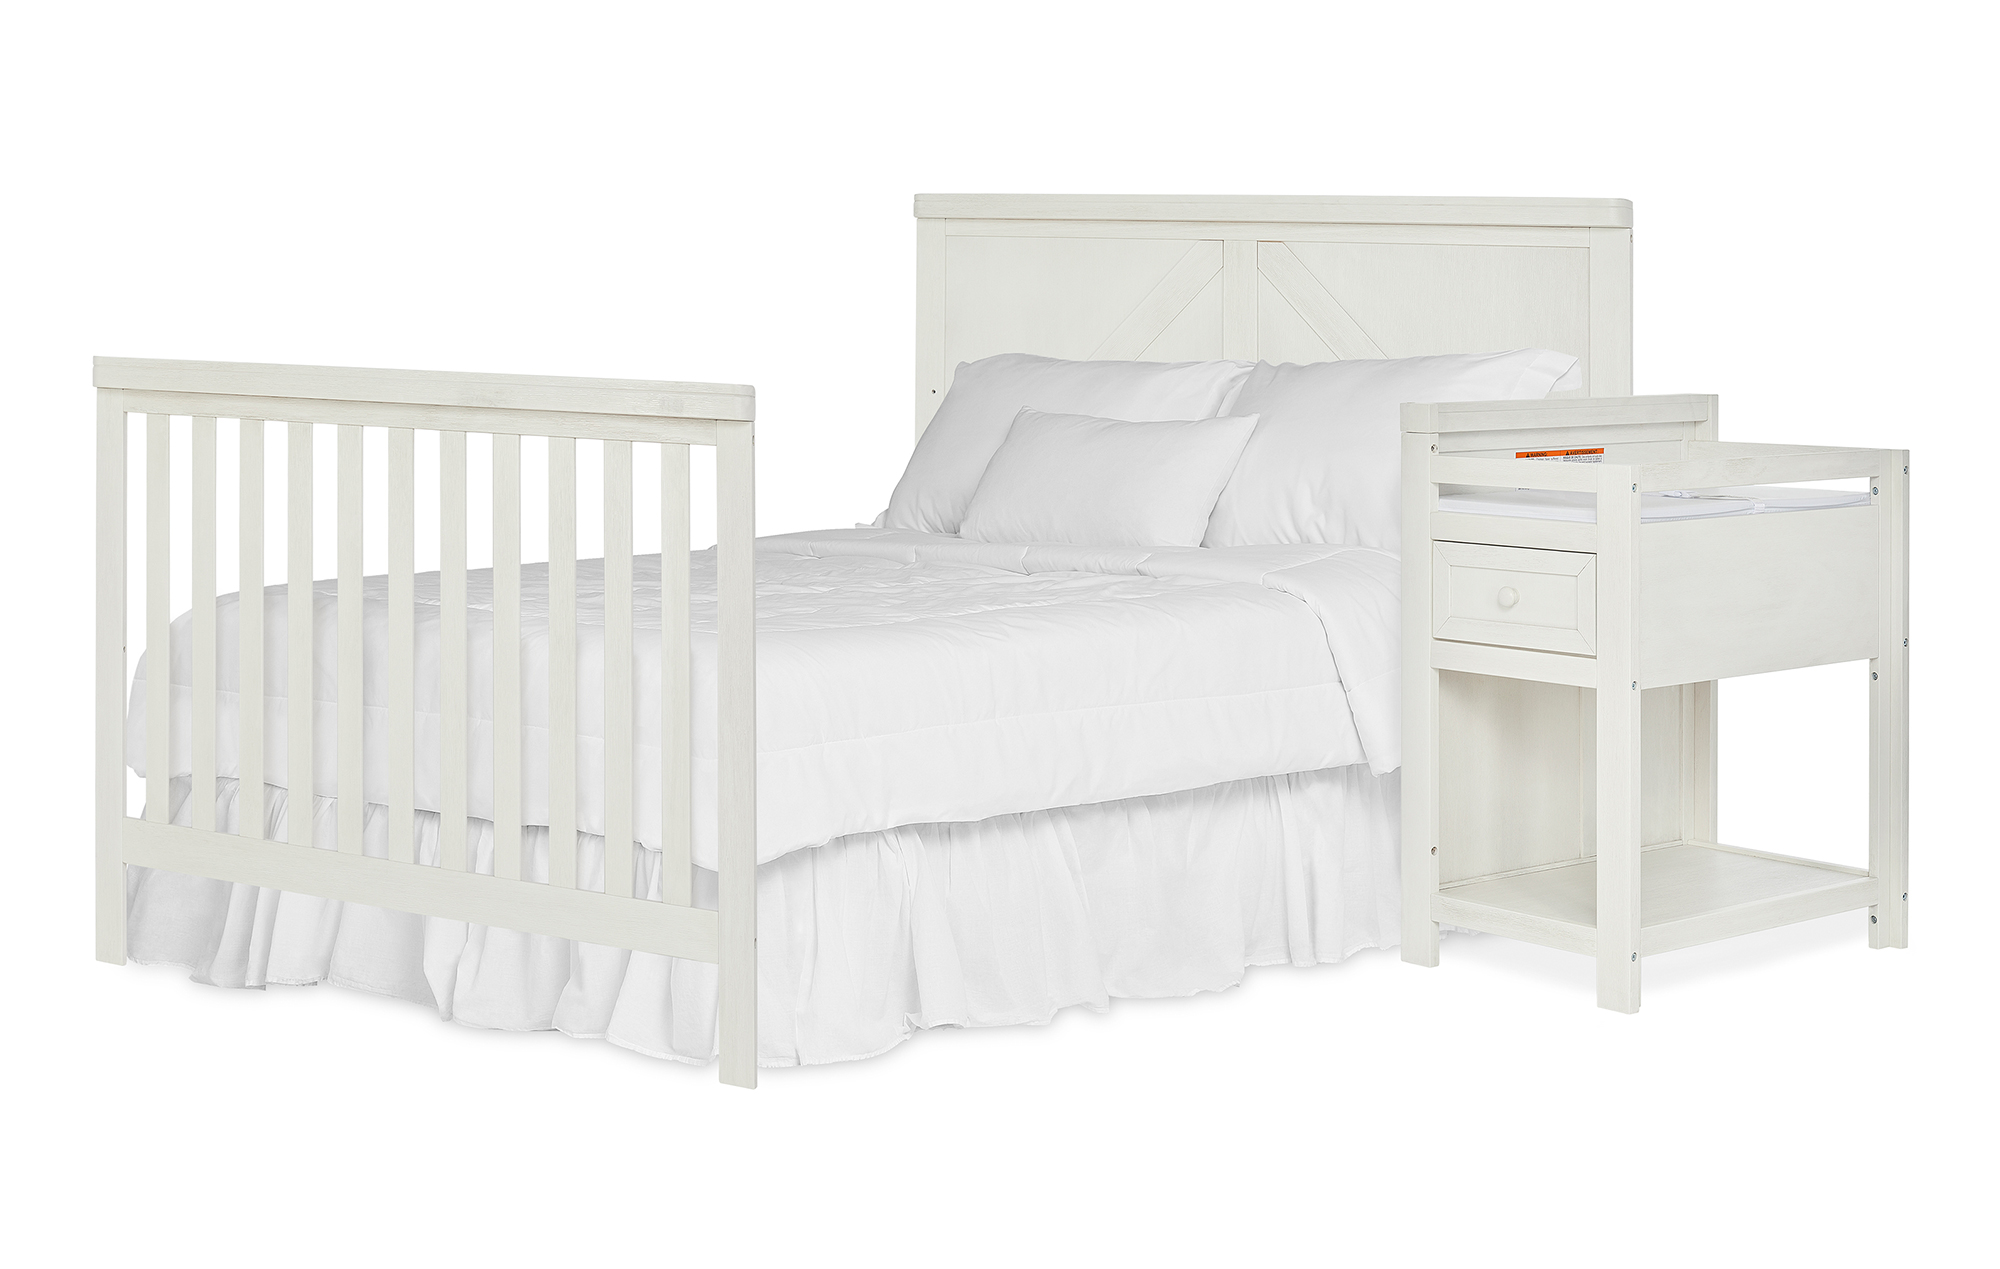 773-WWHITE Meadowland Full Size Bed Headfoot with Changer